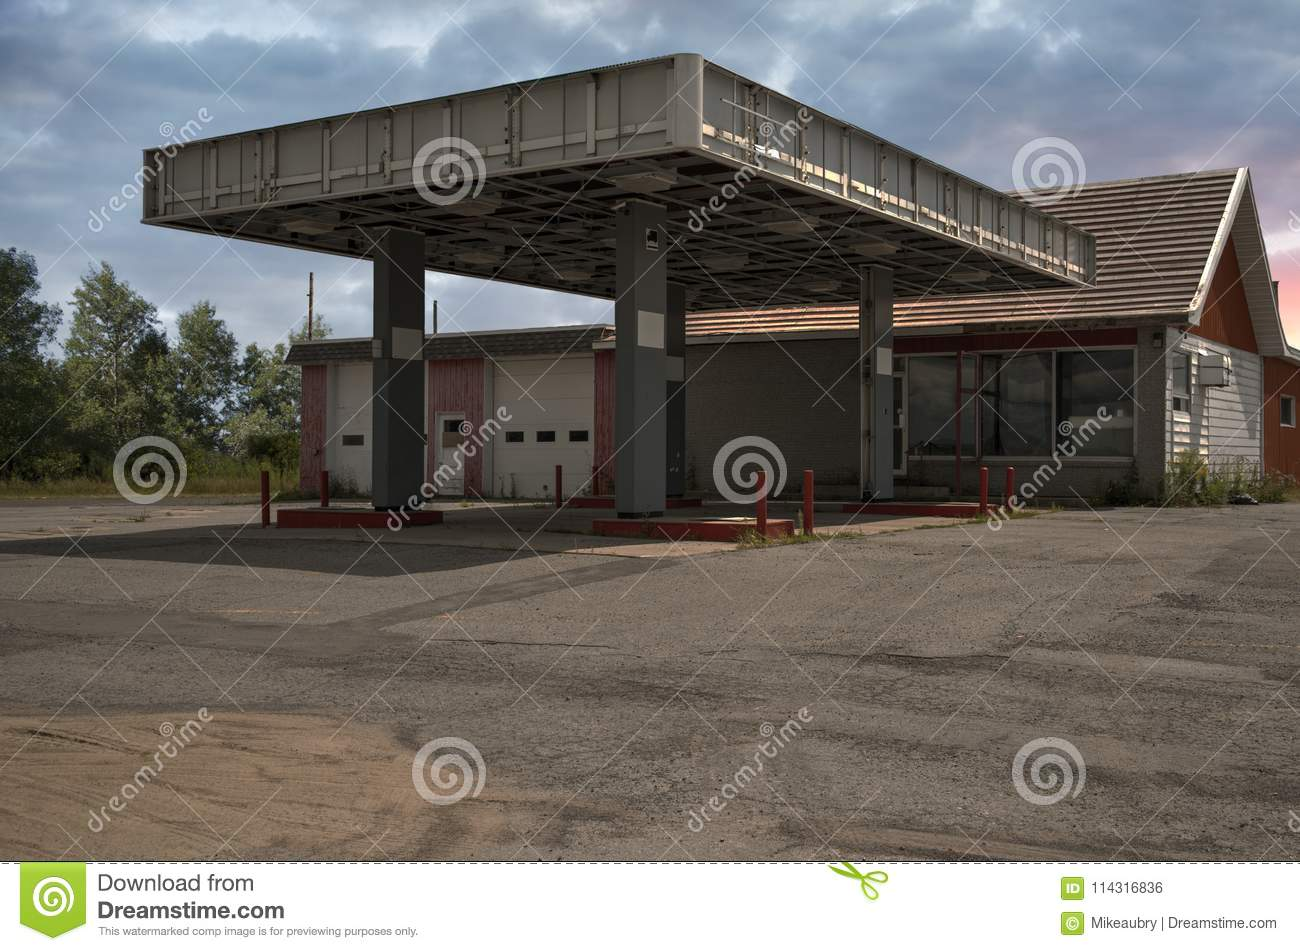 Abandoned Old Gas Station Sunny Summer Day Stock Photo Image Of People Station 114316836